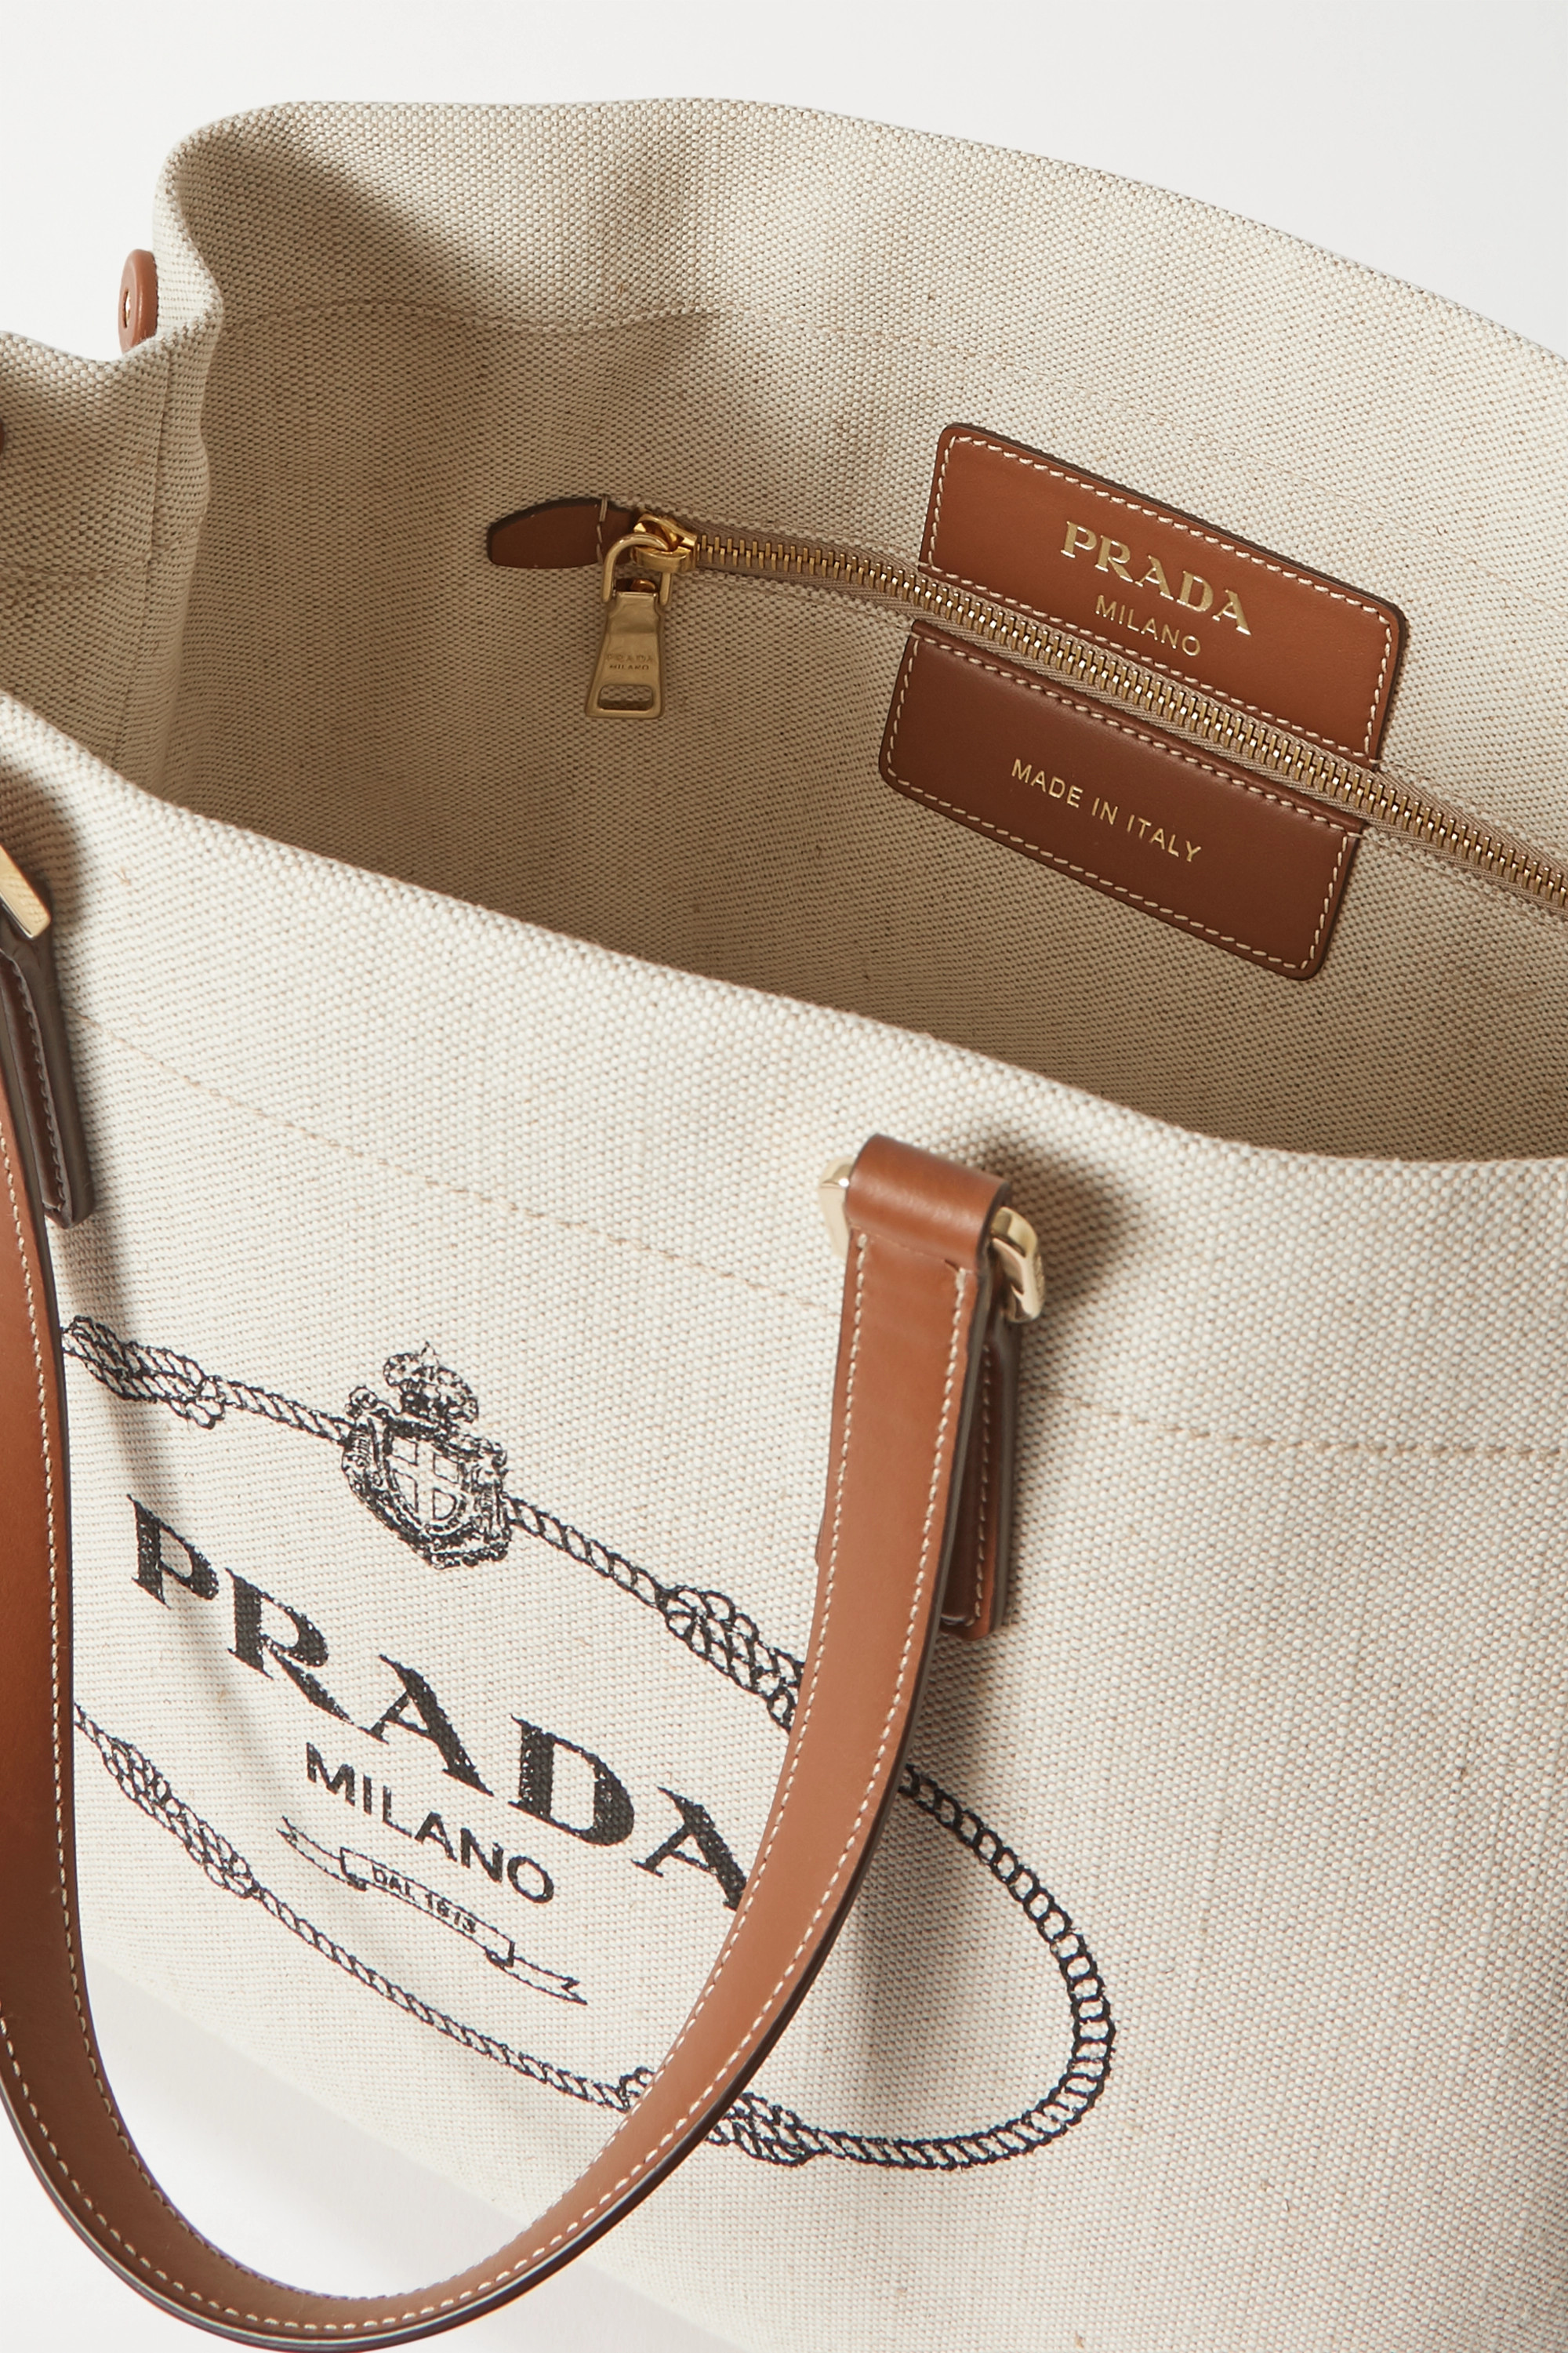 Prada Large printed leather-trimmed canvas tote